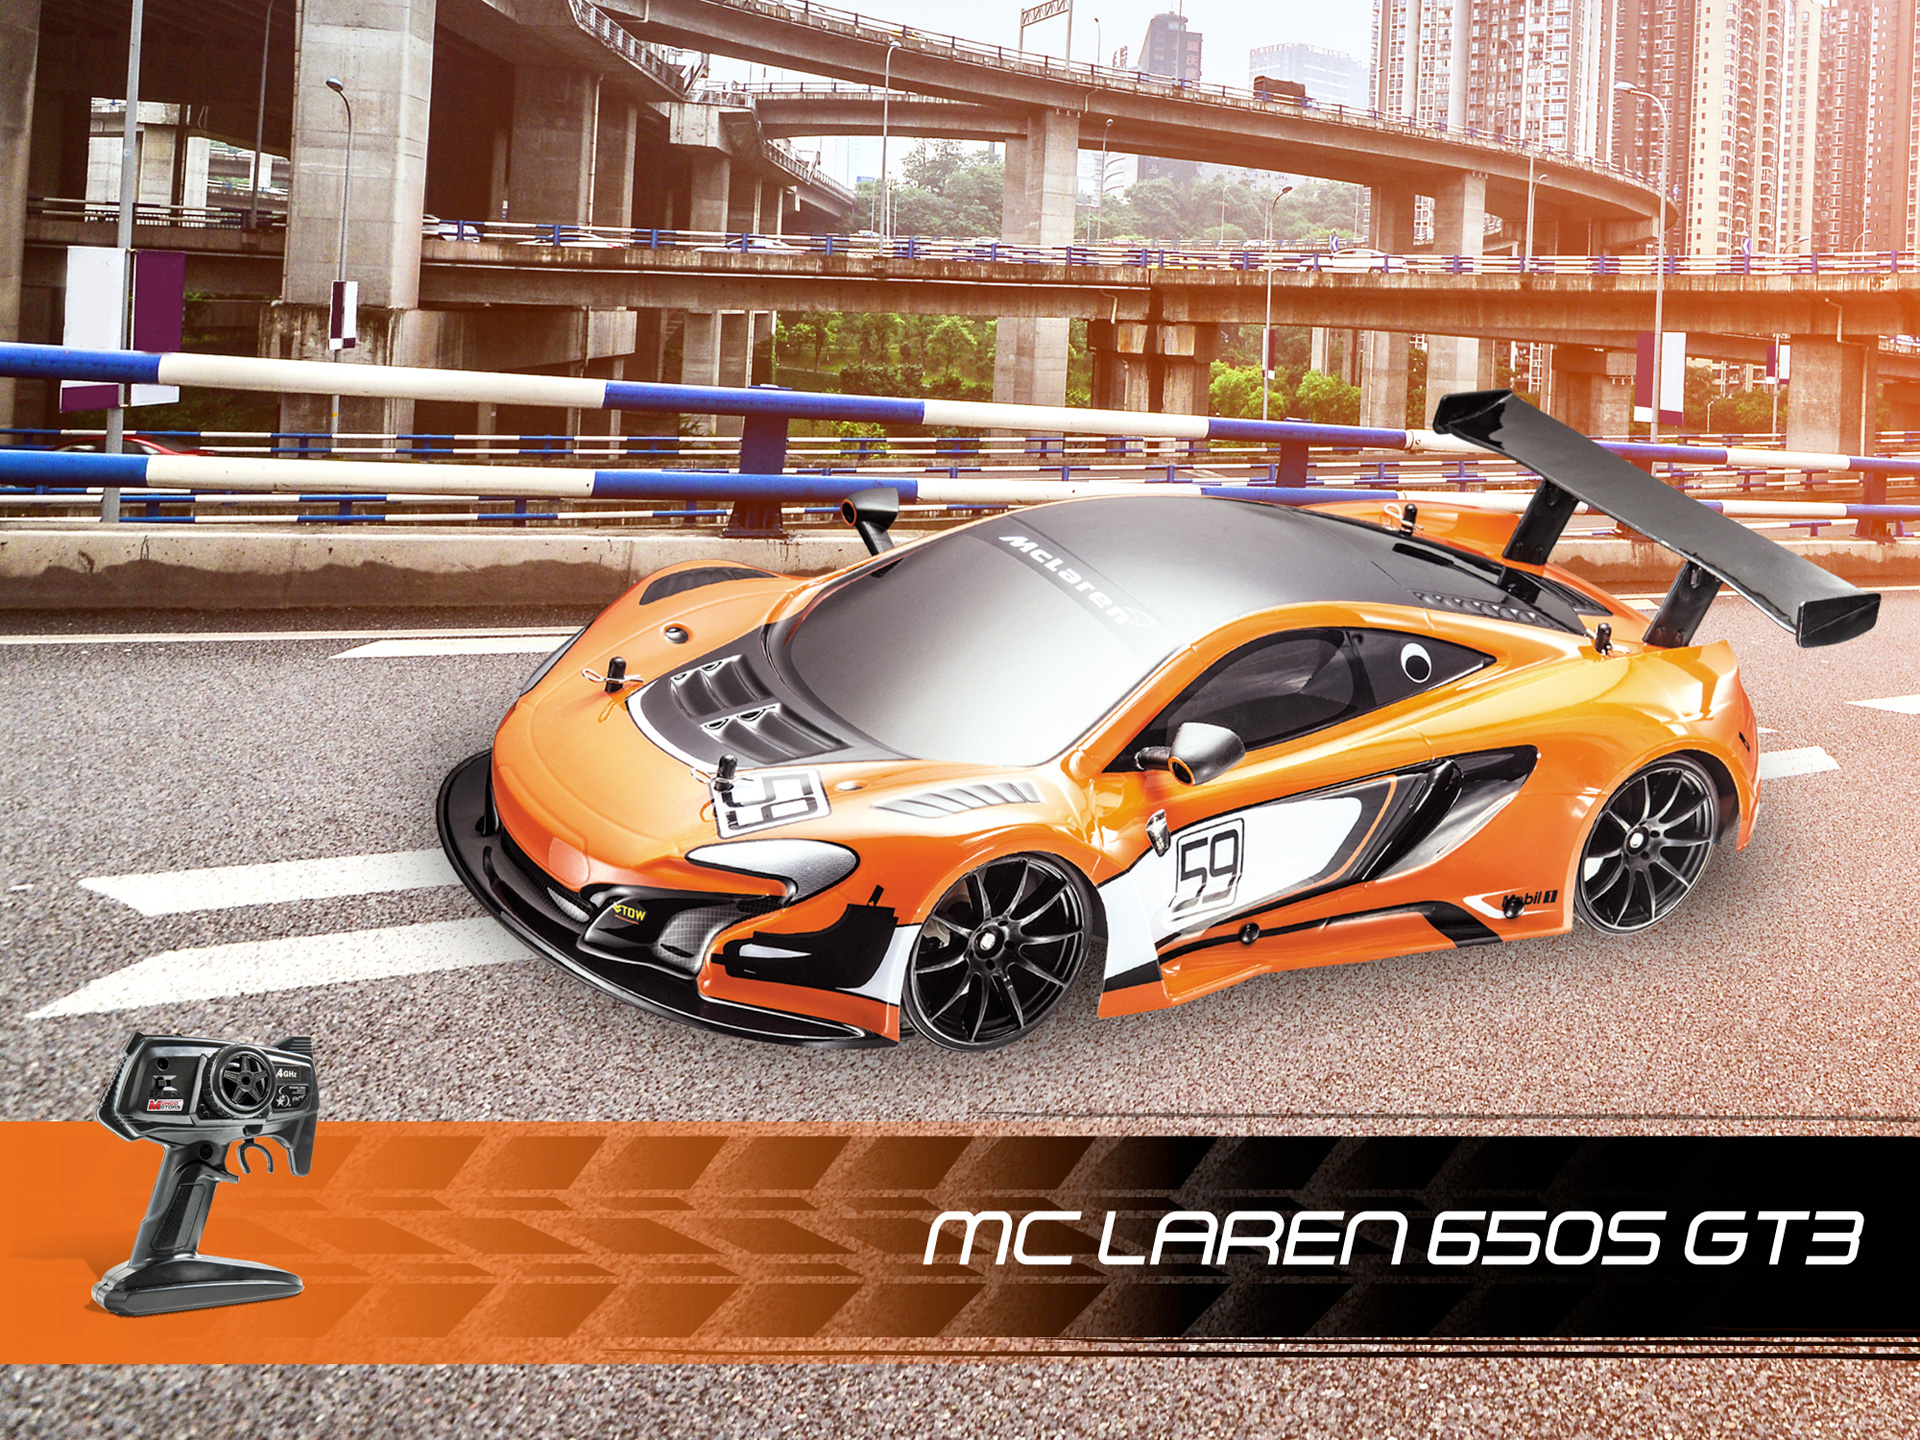 Mondo Motors MC Laren